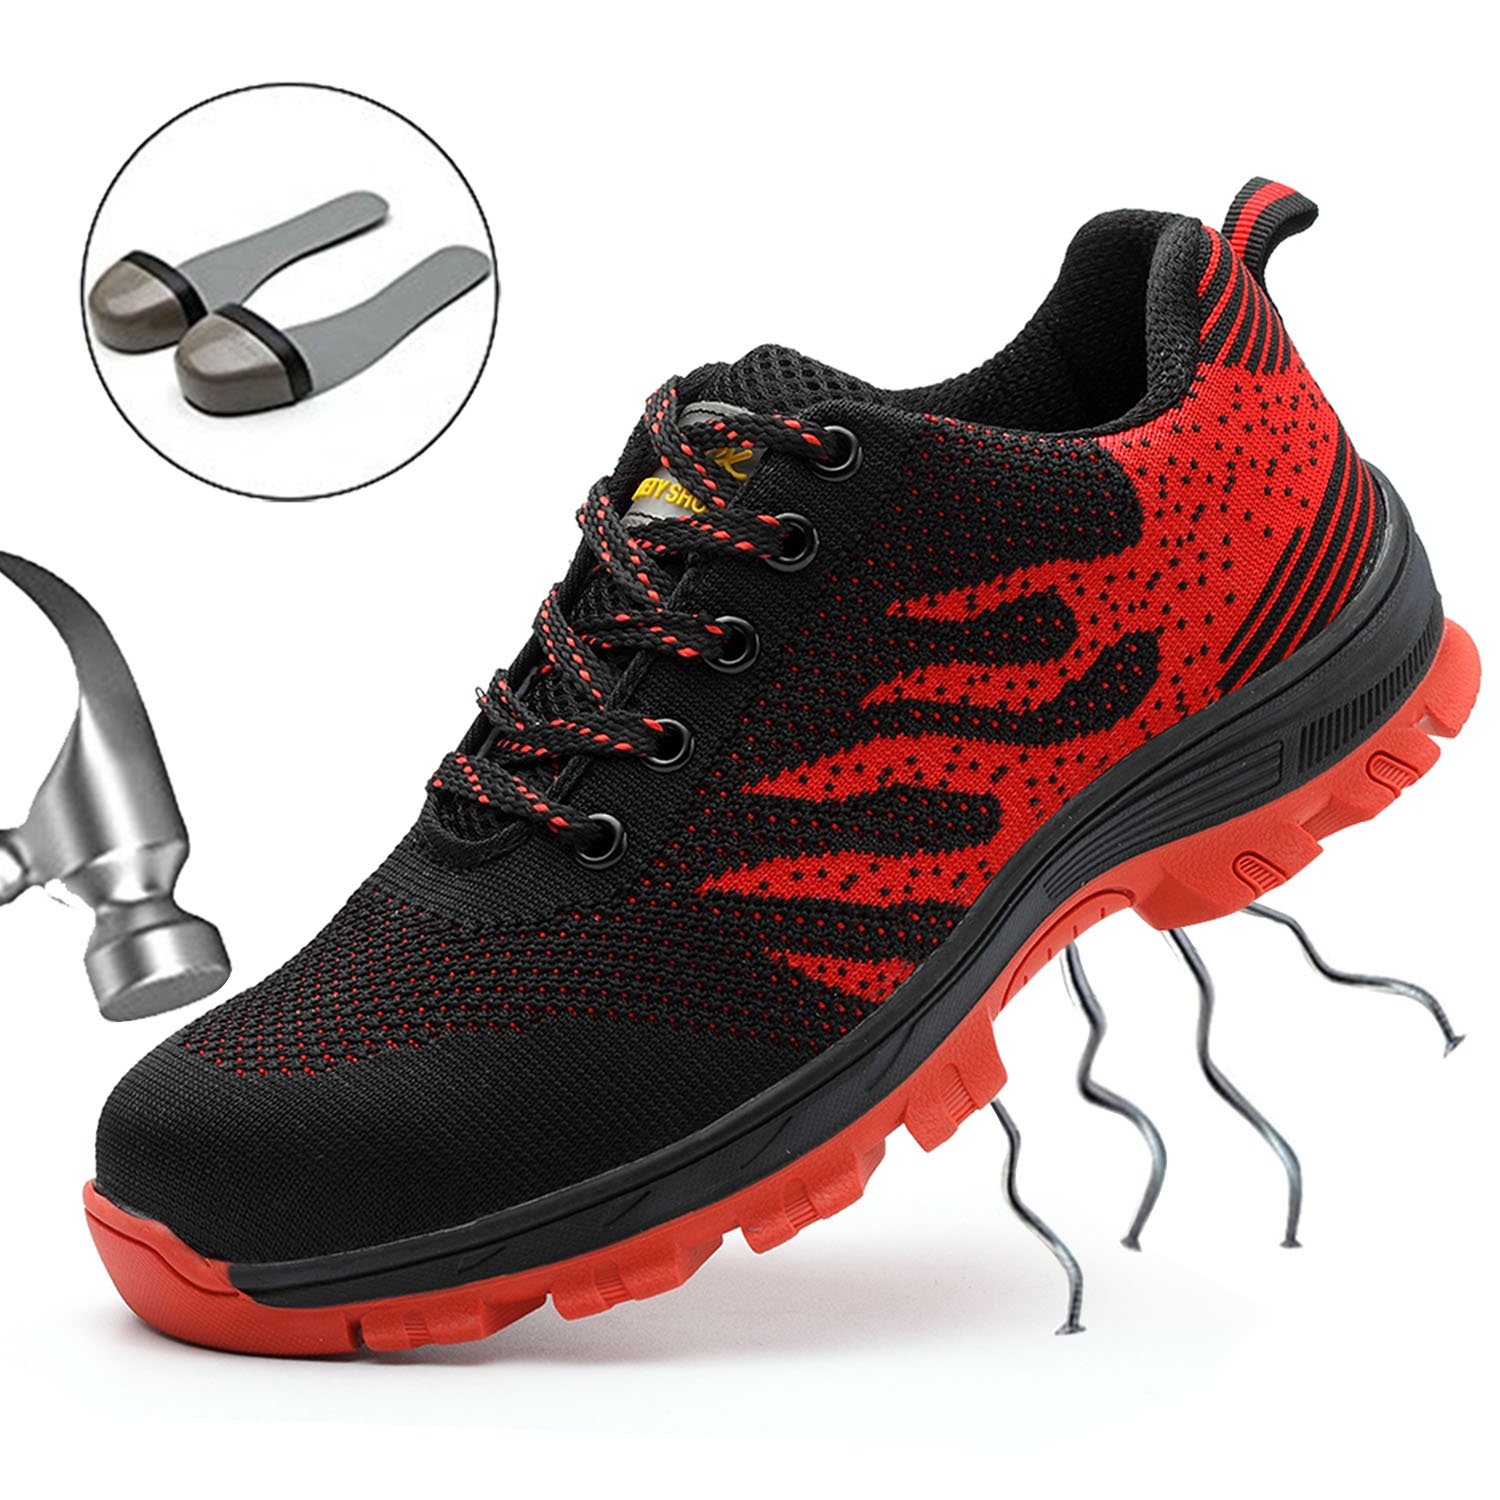 SUADEX Steel Toe Shoes Men, Work Shoes, Safety Shoes, Steel Toe Boots for Men